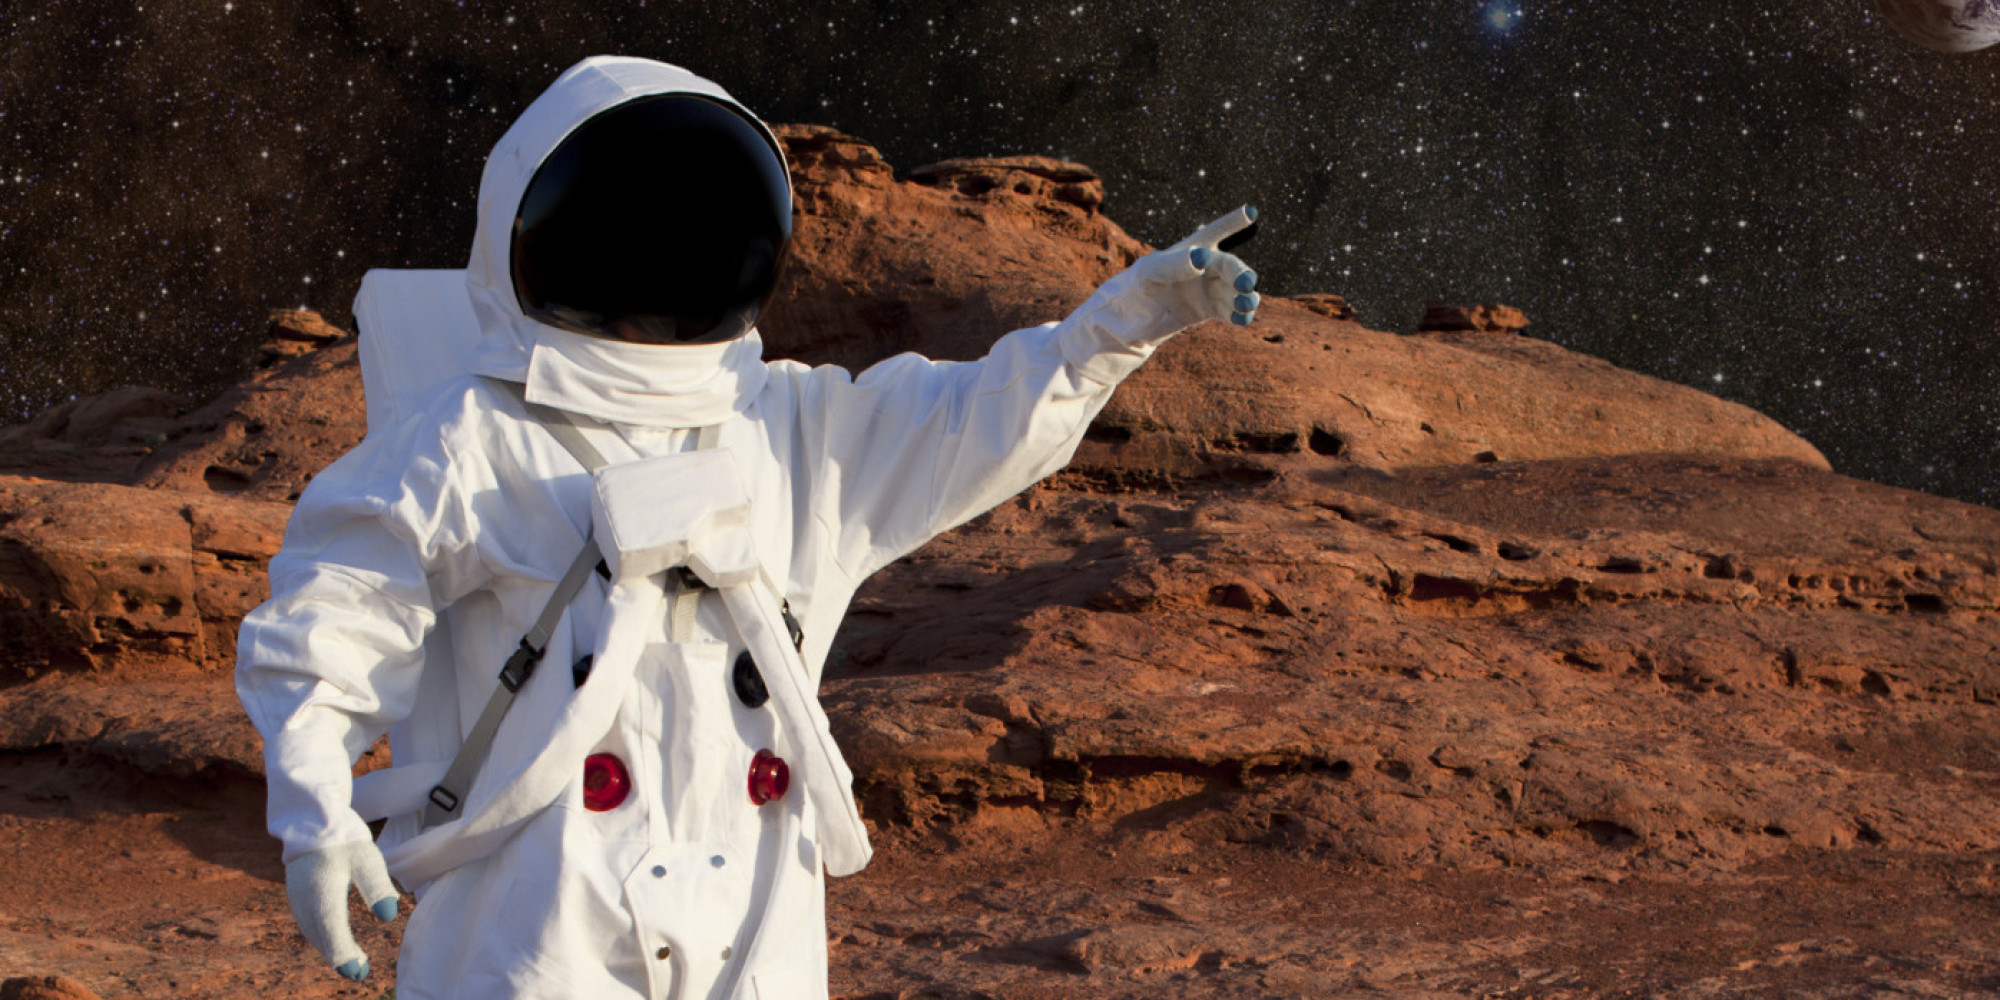 NASA's 'Major' Mars Announcement Could Be Spectacularly Boring